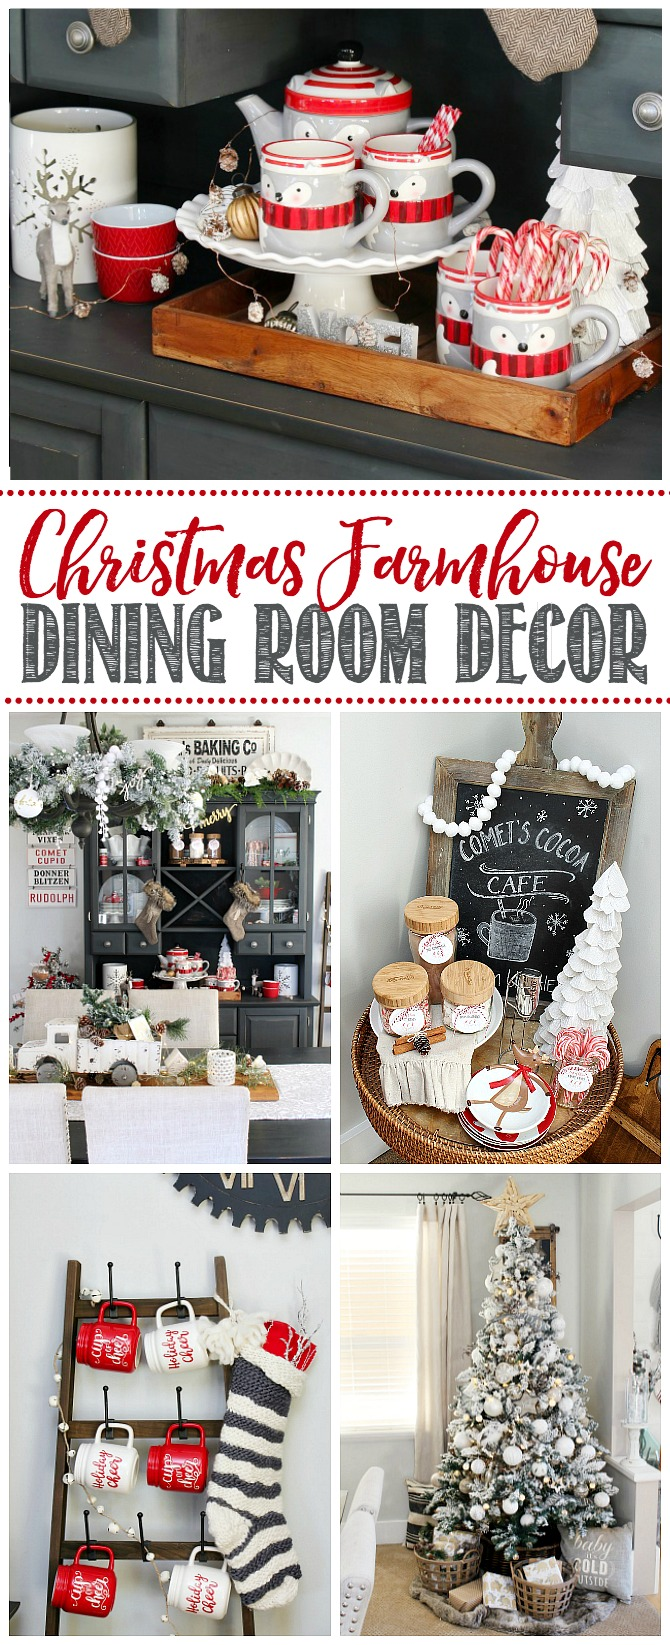 Christmas farmhouse dining room decor ideas with red, black, and white.